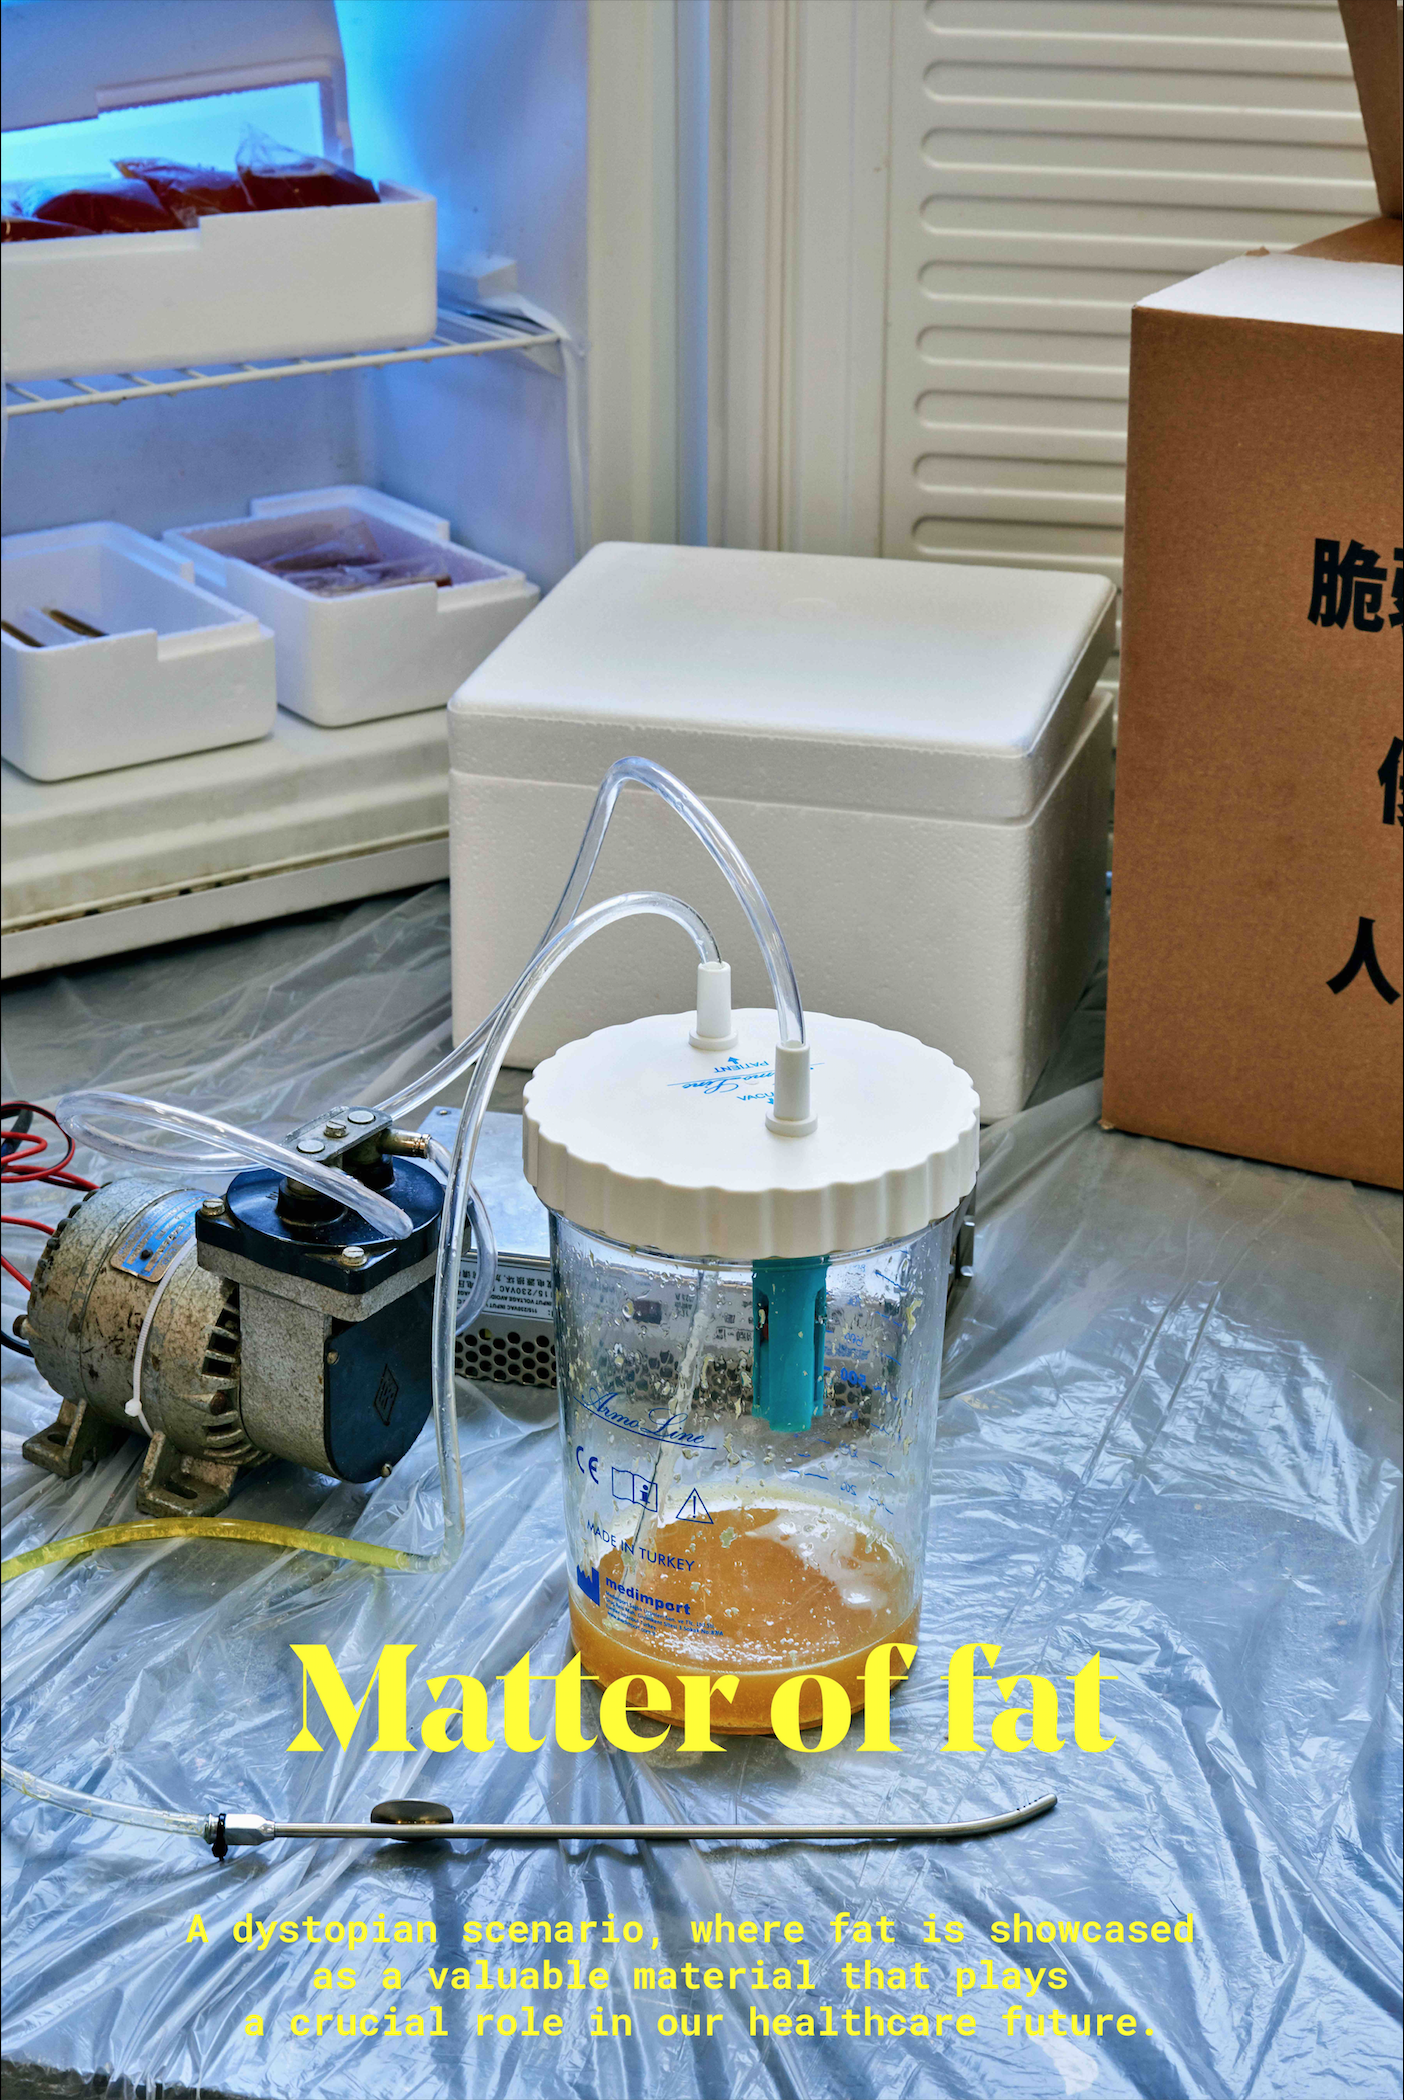 Matter of Fat is a dystopian scenario, where fat is extracted for its monetary and medical qualities. Indeed, it contains stem cells which can be grown into any kind of organs and costs on average $125 per gram. Current BioBank already proposes storage of stem cells for a lot of money. How could lower income families get access to this future and promising medical care? Inspired by the liposuction technique, a DIY extraction finds a place in modest interiors. This underground system allows fat to be treated and cryopreserved. My project relates the manner how an opportunist and ambitious person - half-medic and half-dealer - create a service for the most modest households.